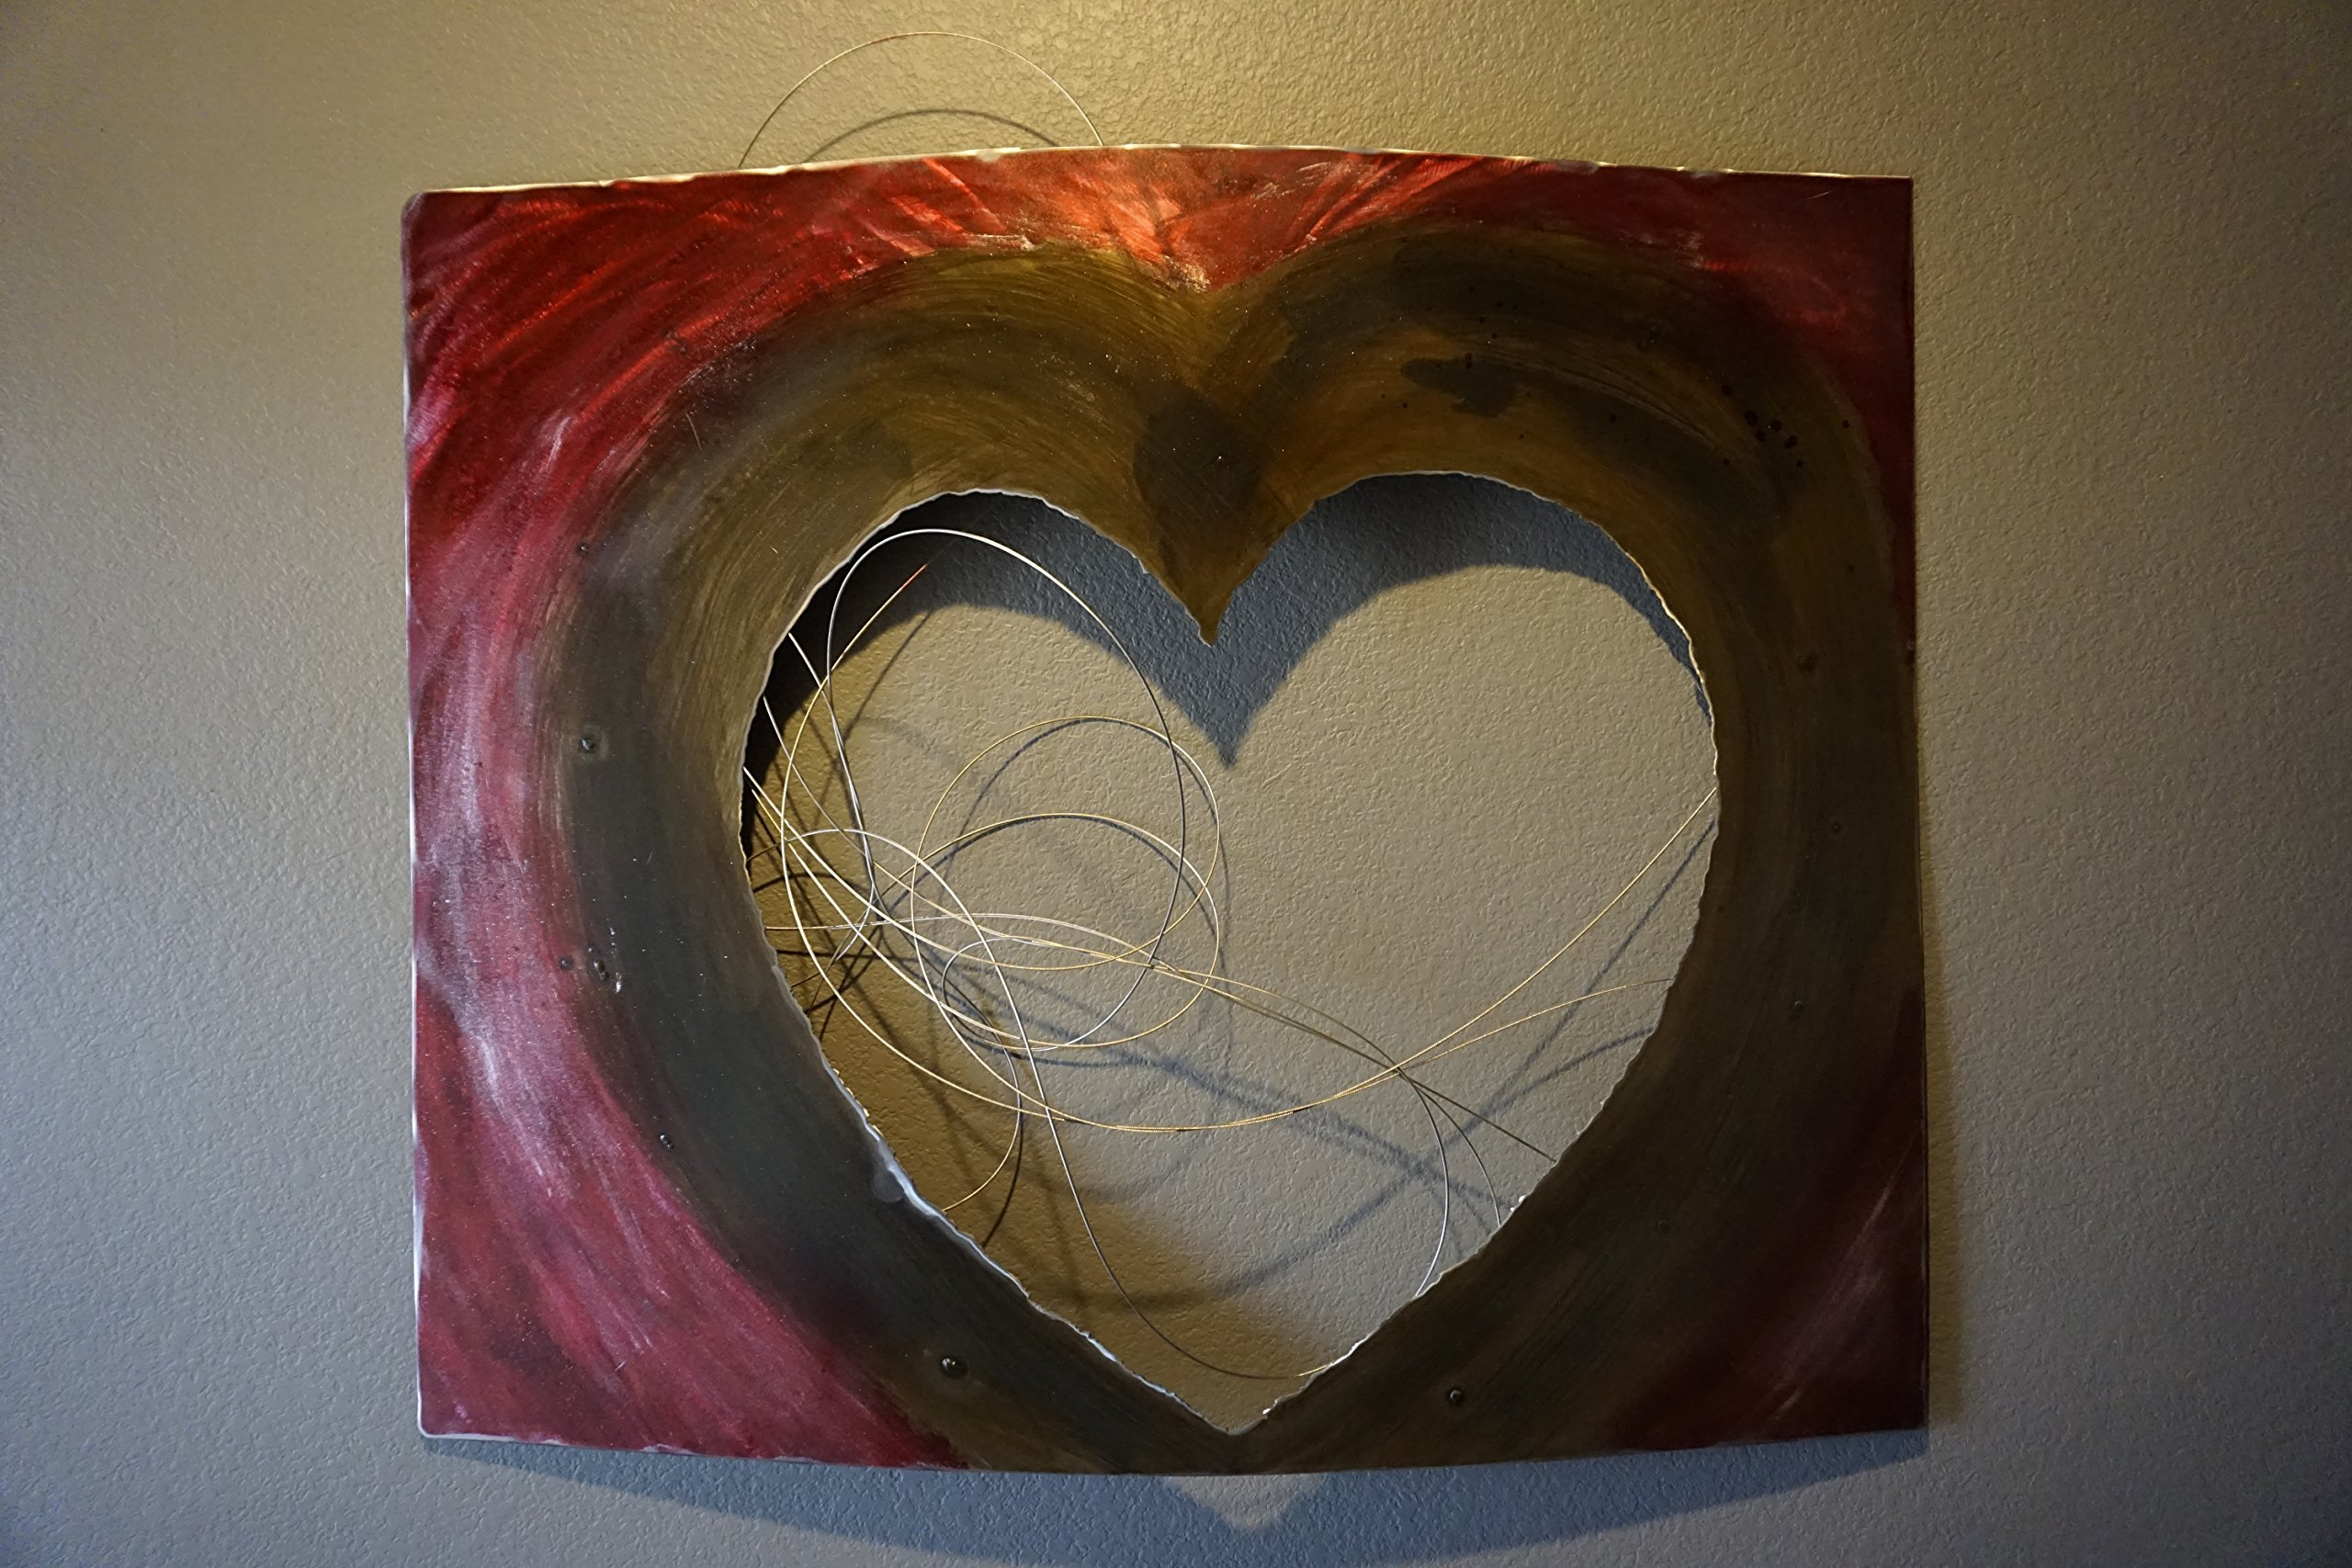 Wall Decor - Hand made one of a kind kind abstract metal art piece. Heart with movable wires - ''Forever Changing Heart''